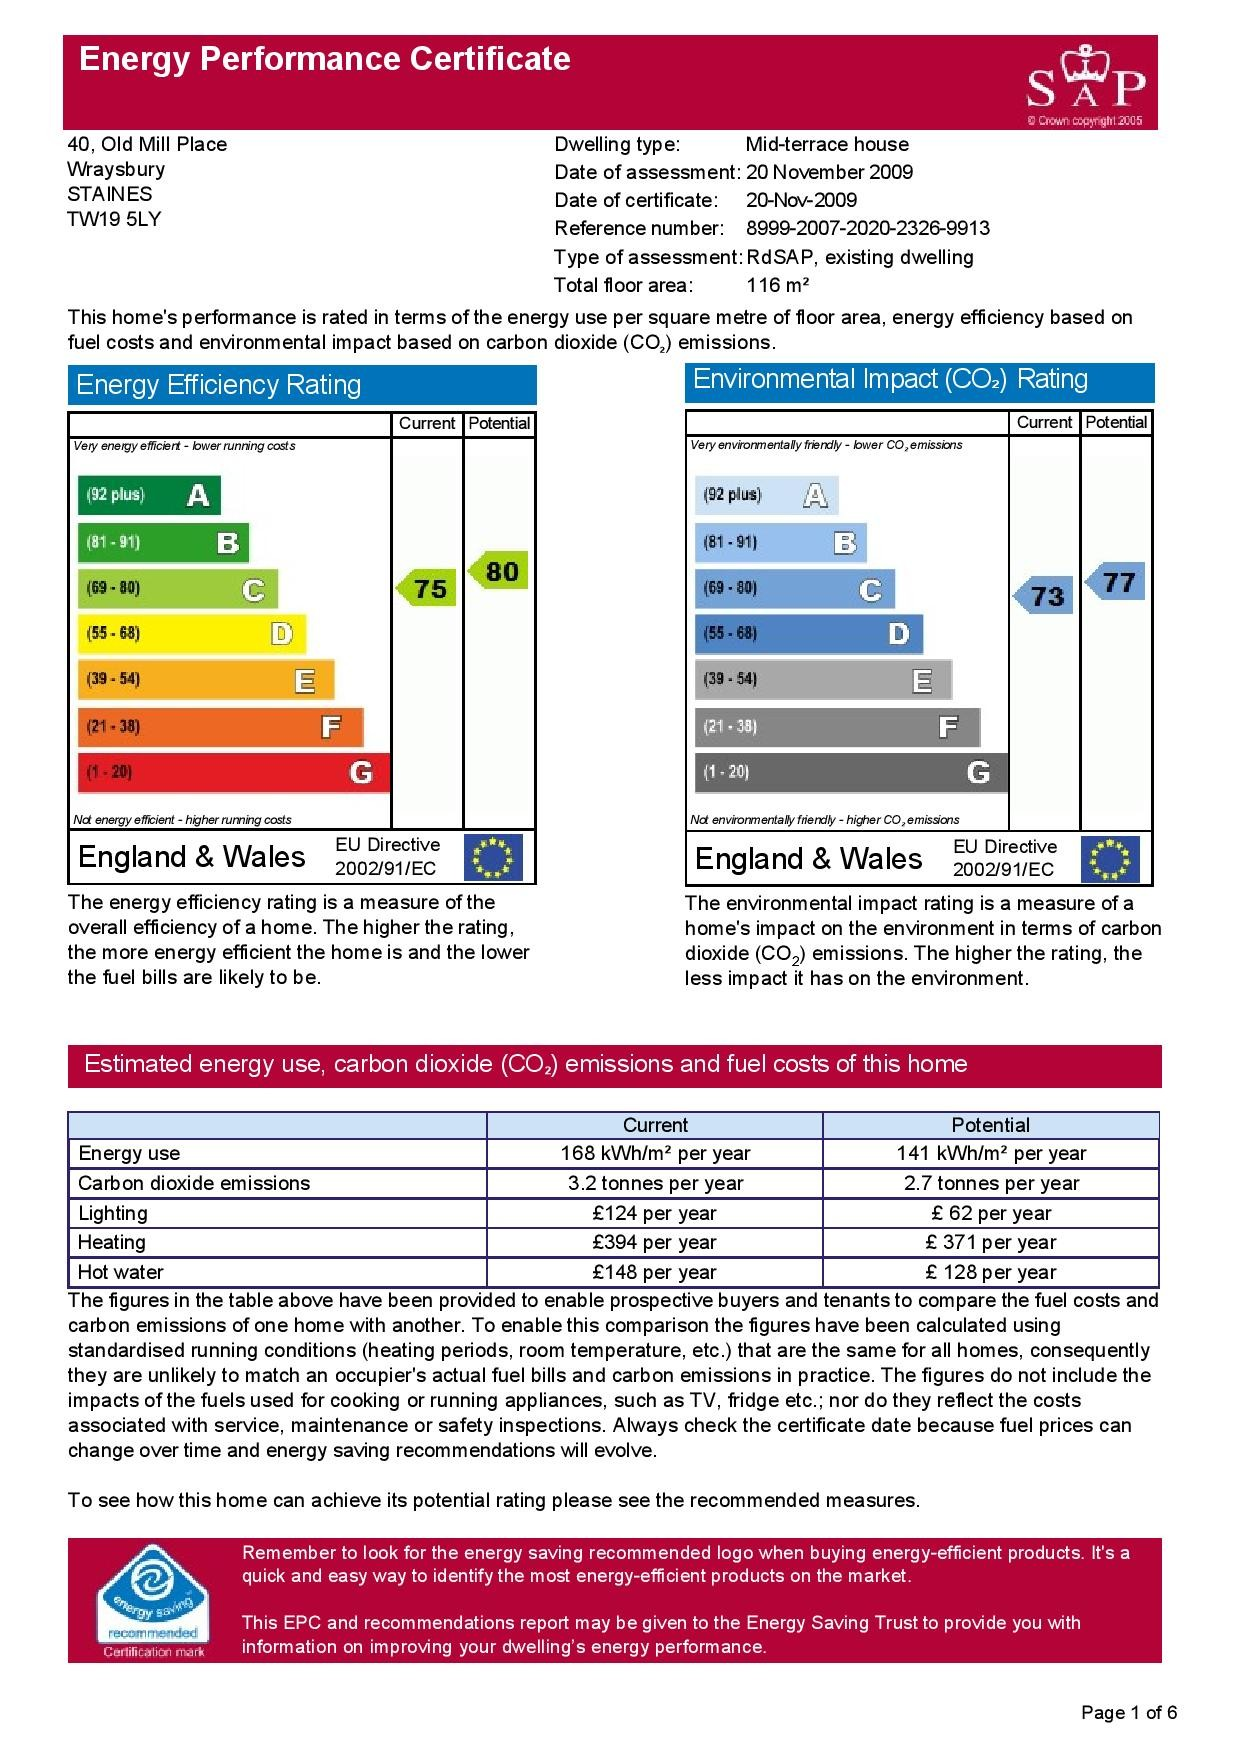 EPC Graph for 40 Old Mill Place, Wraysbury, Berkshire TW19 5LY